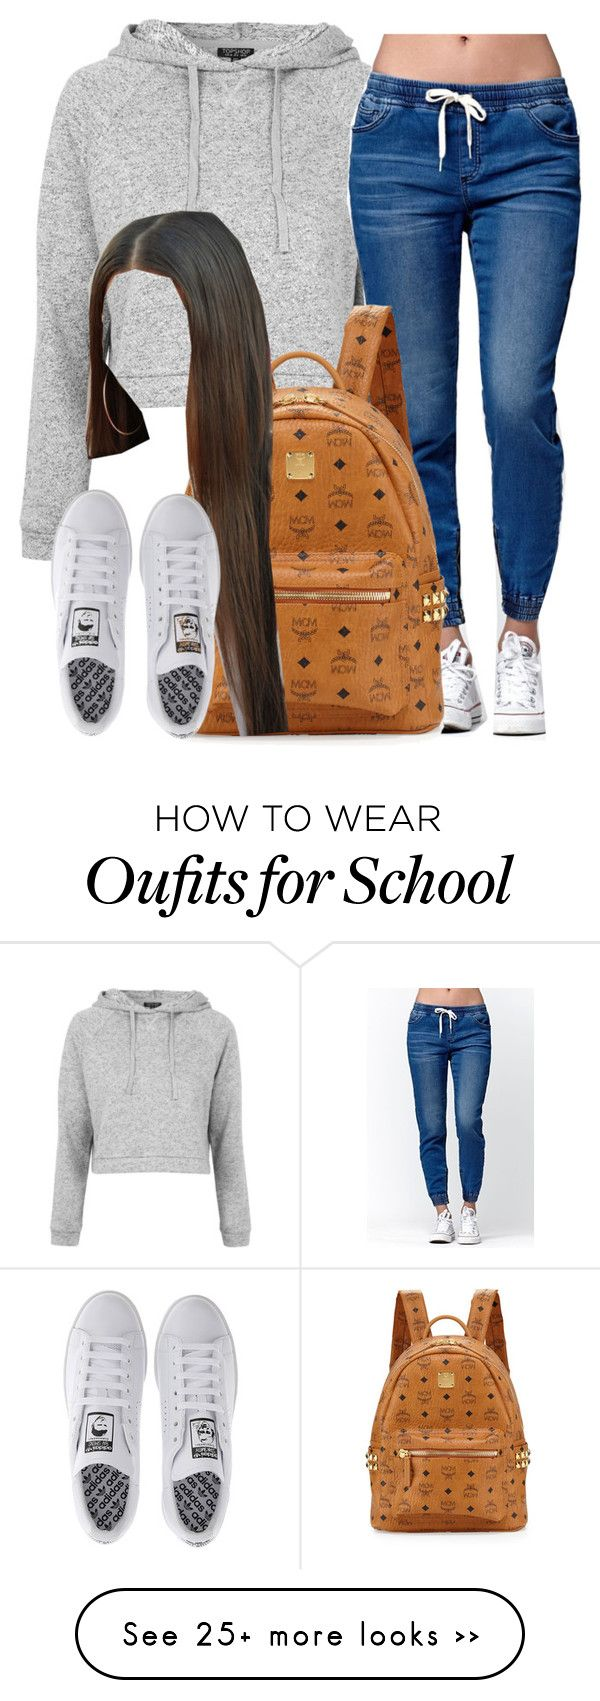 """School "" by trillest-queen on Polyvore featuring Topshop, Bullhead Denim Co., MCM and adidas"